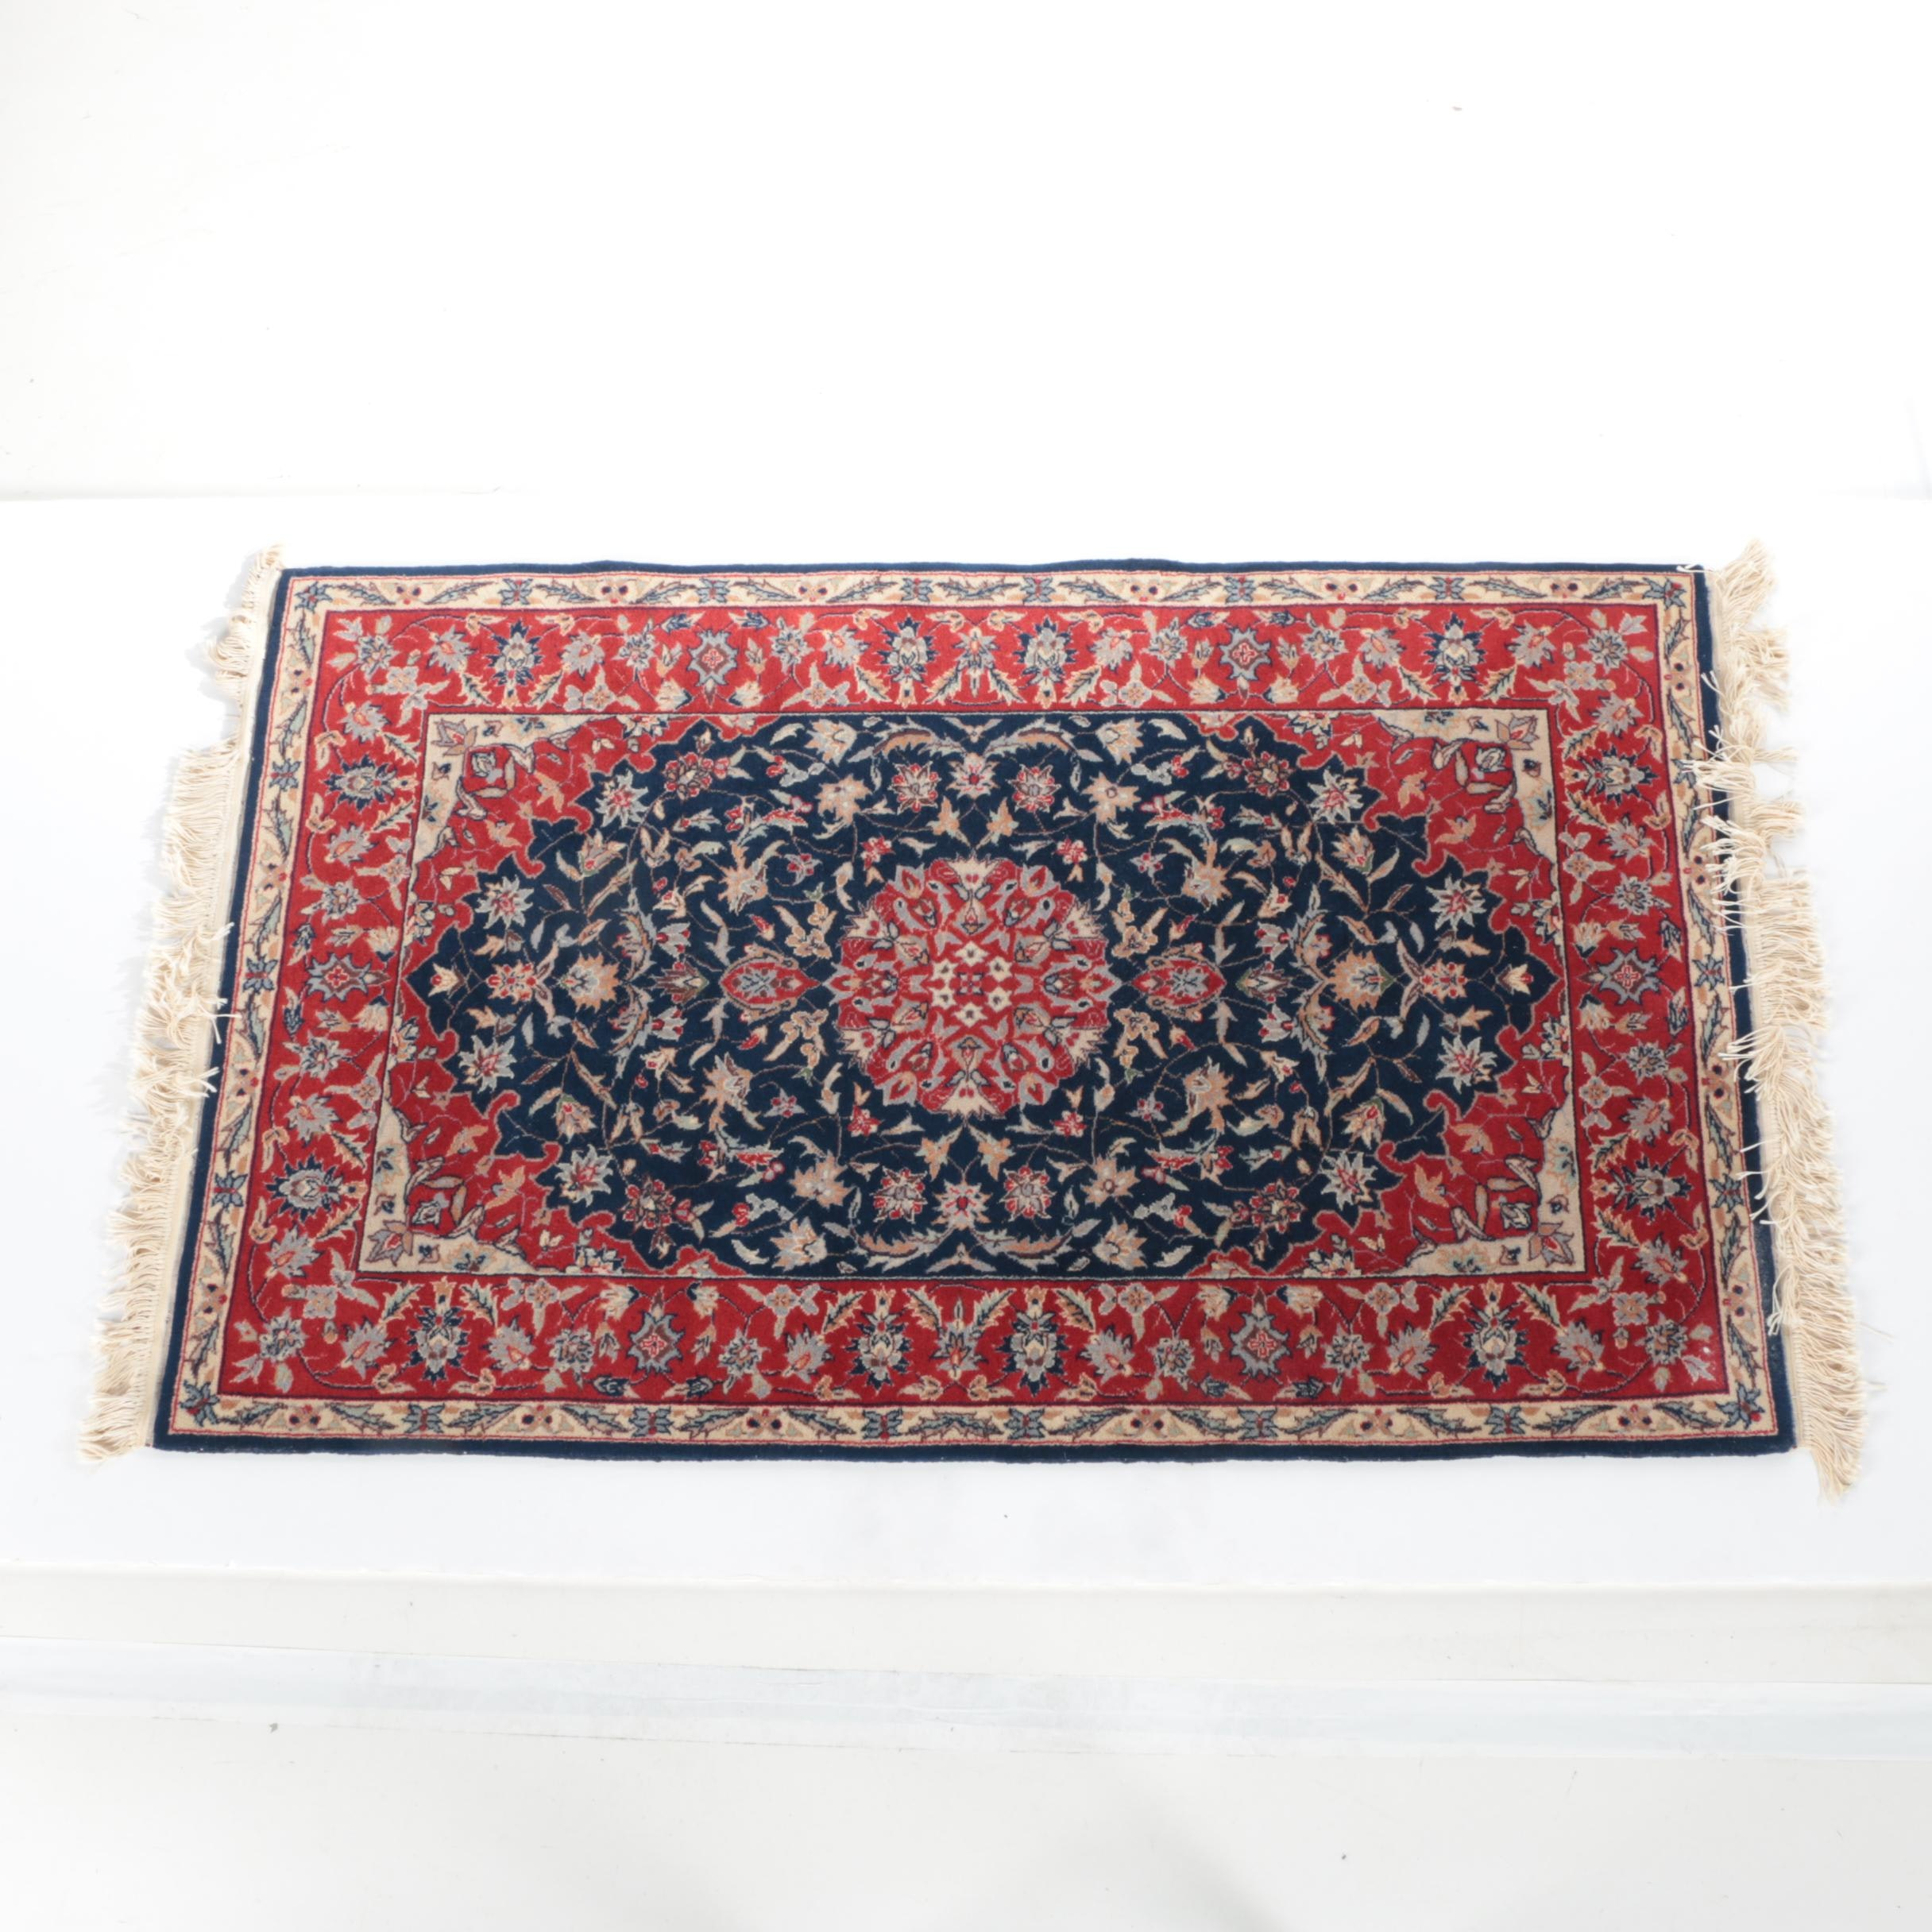 Hand-Knotted Northwest Persian Area Rug